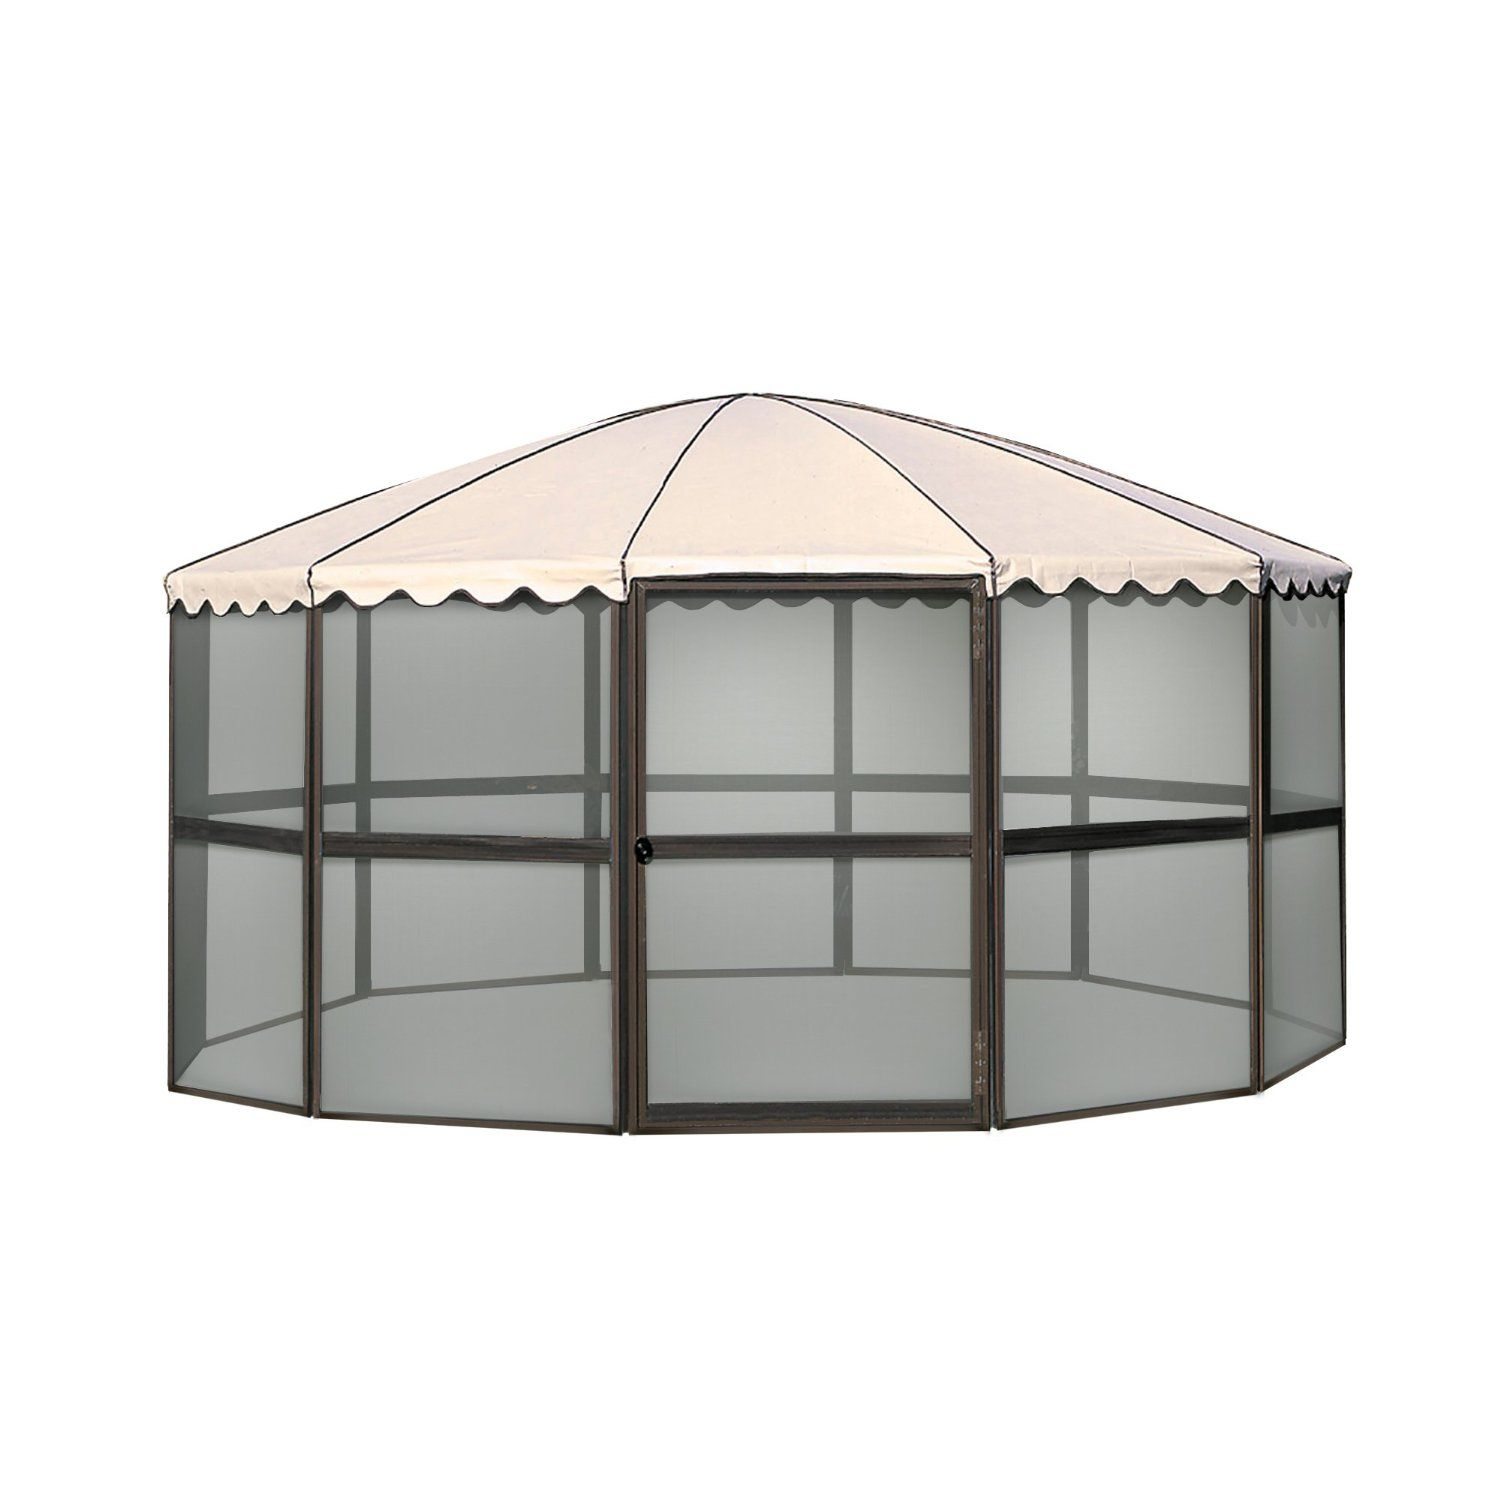 Casita 23165 12 panel round screen house for Backyard screen house